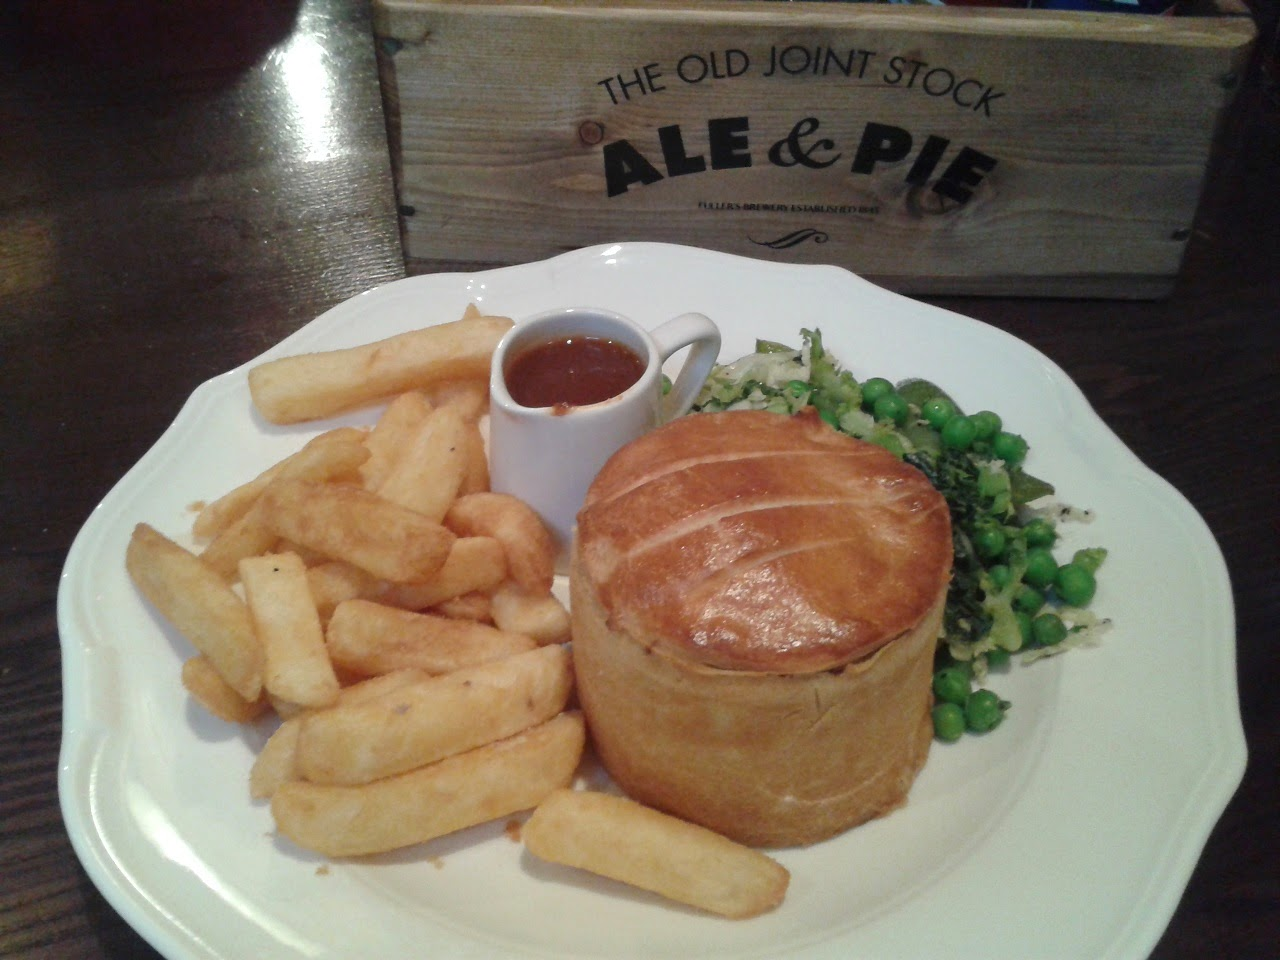 Old Joint Stock Ale and Pie House - Steak Pie Review